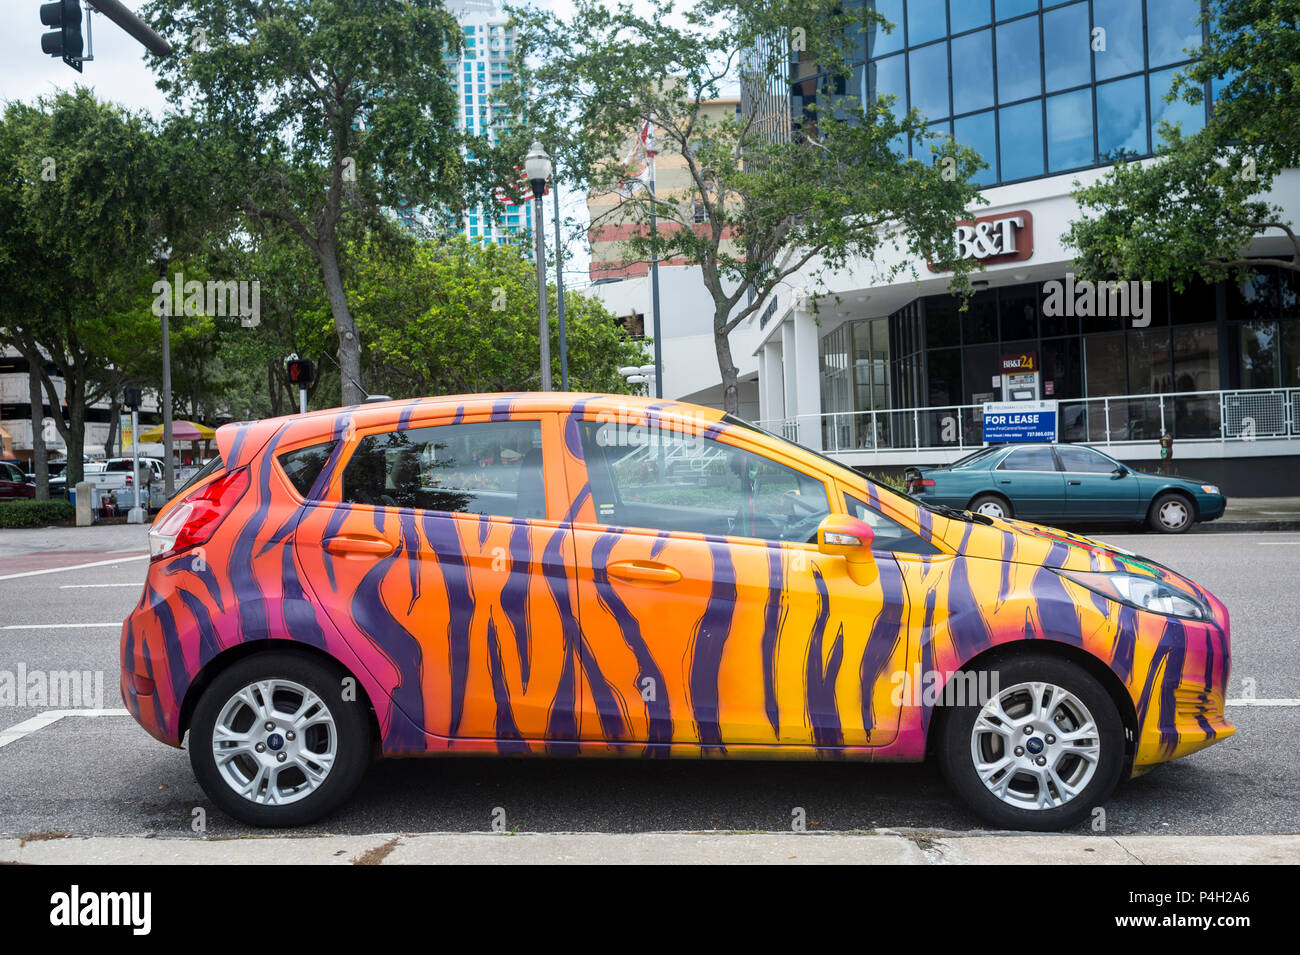 ford car painted in multicoloured striped design. - Stock Image